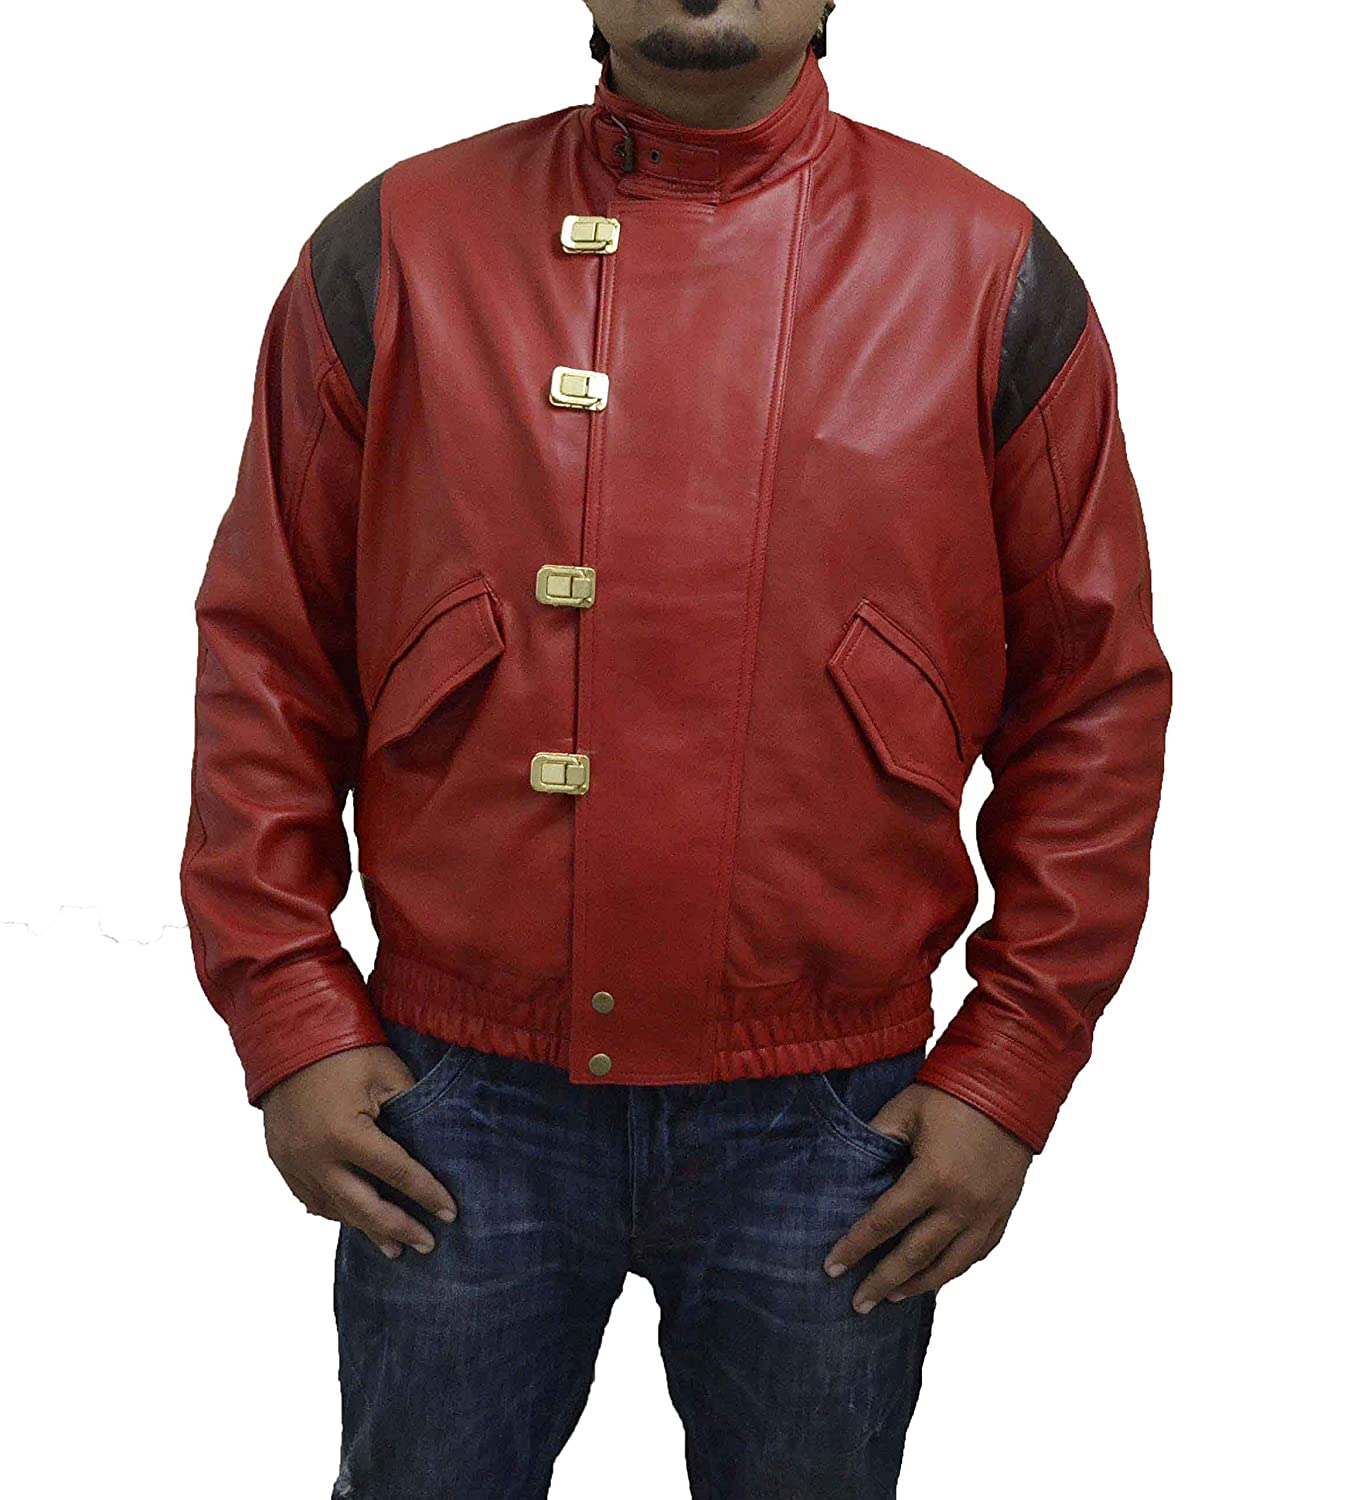 REAL RED AKIRA KANEDA CLASSIC VINTAGE BIKER SHEEP LEATHER JACKET WITHOUT CAPSULE & TEXT